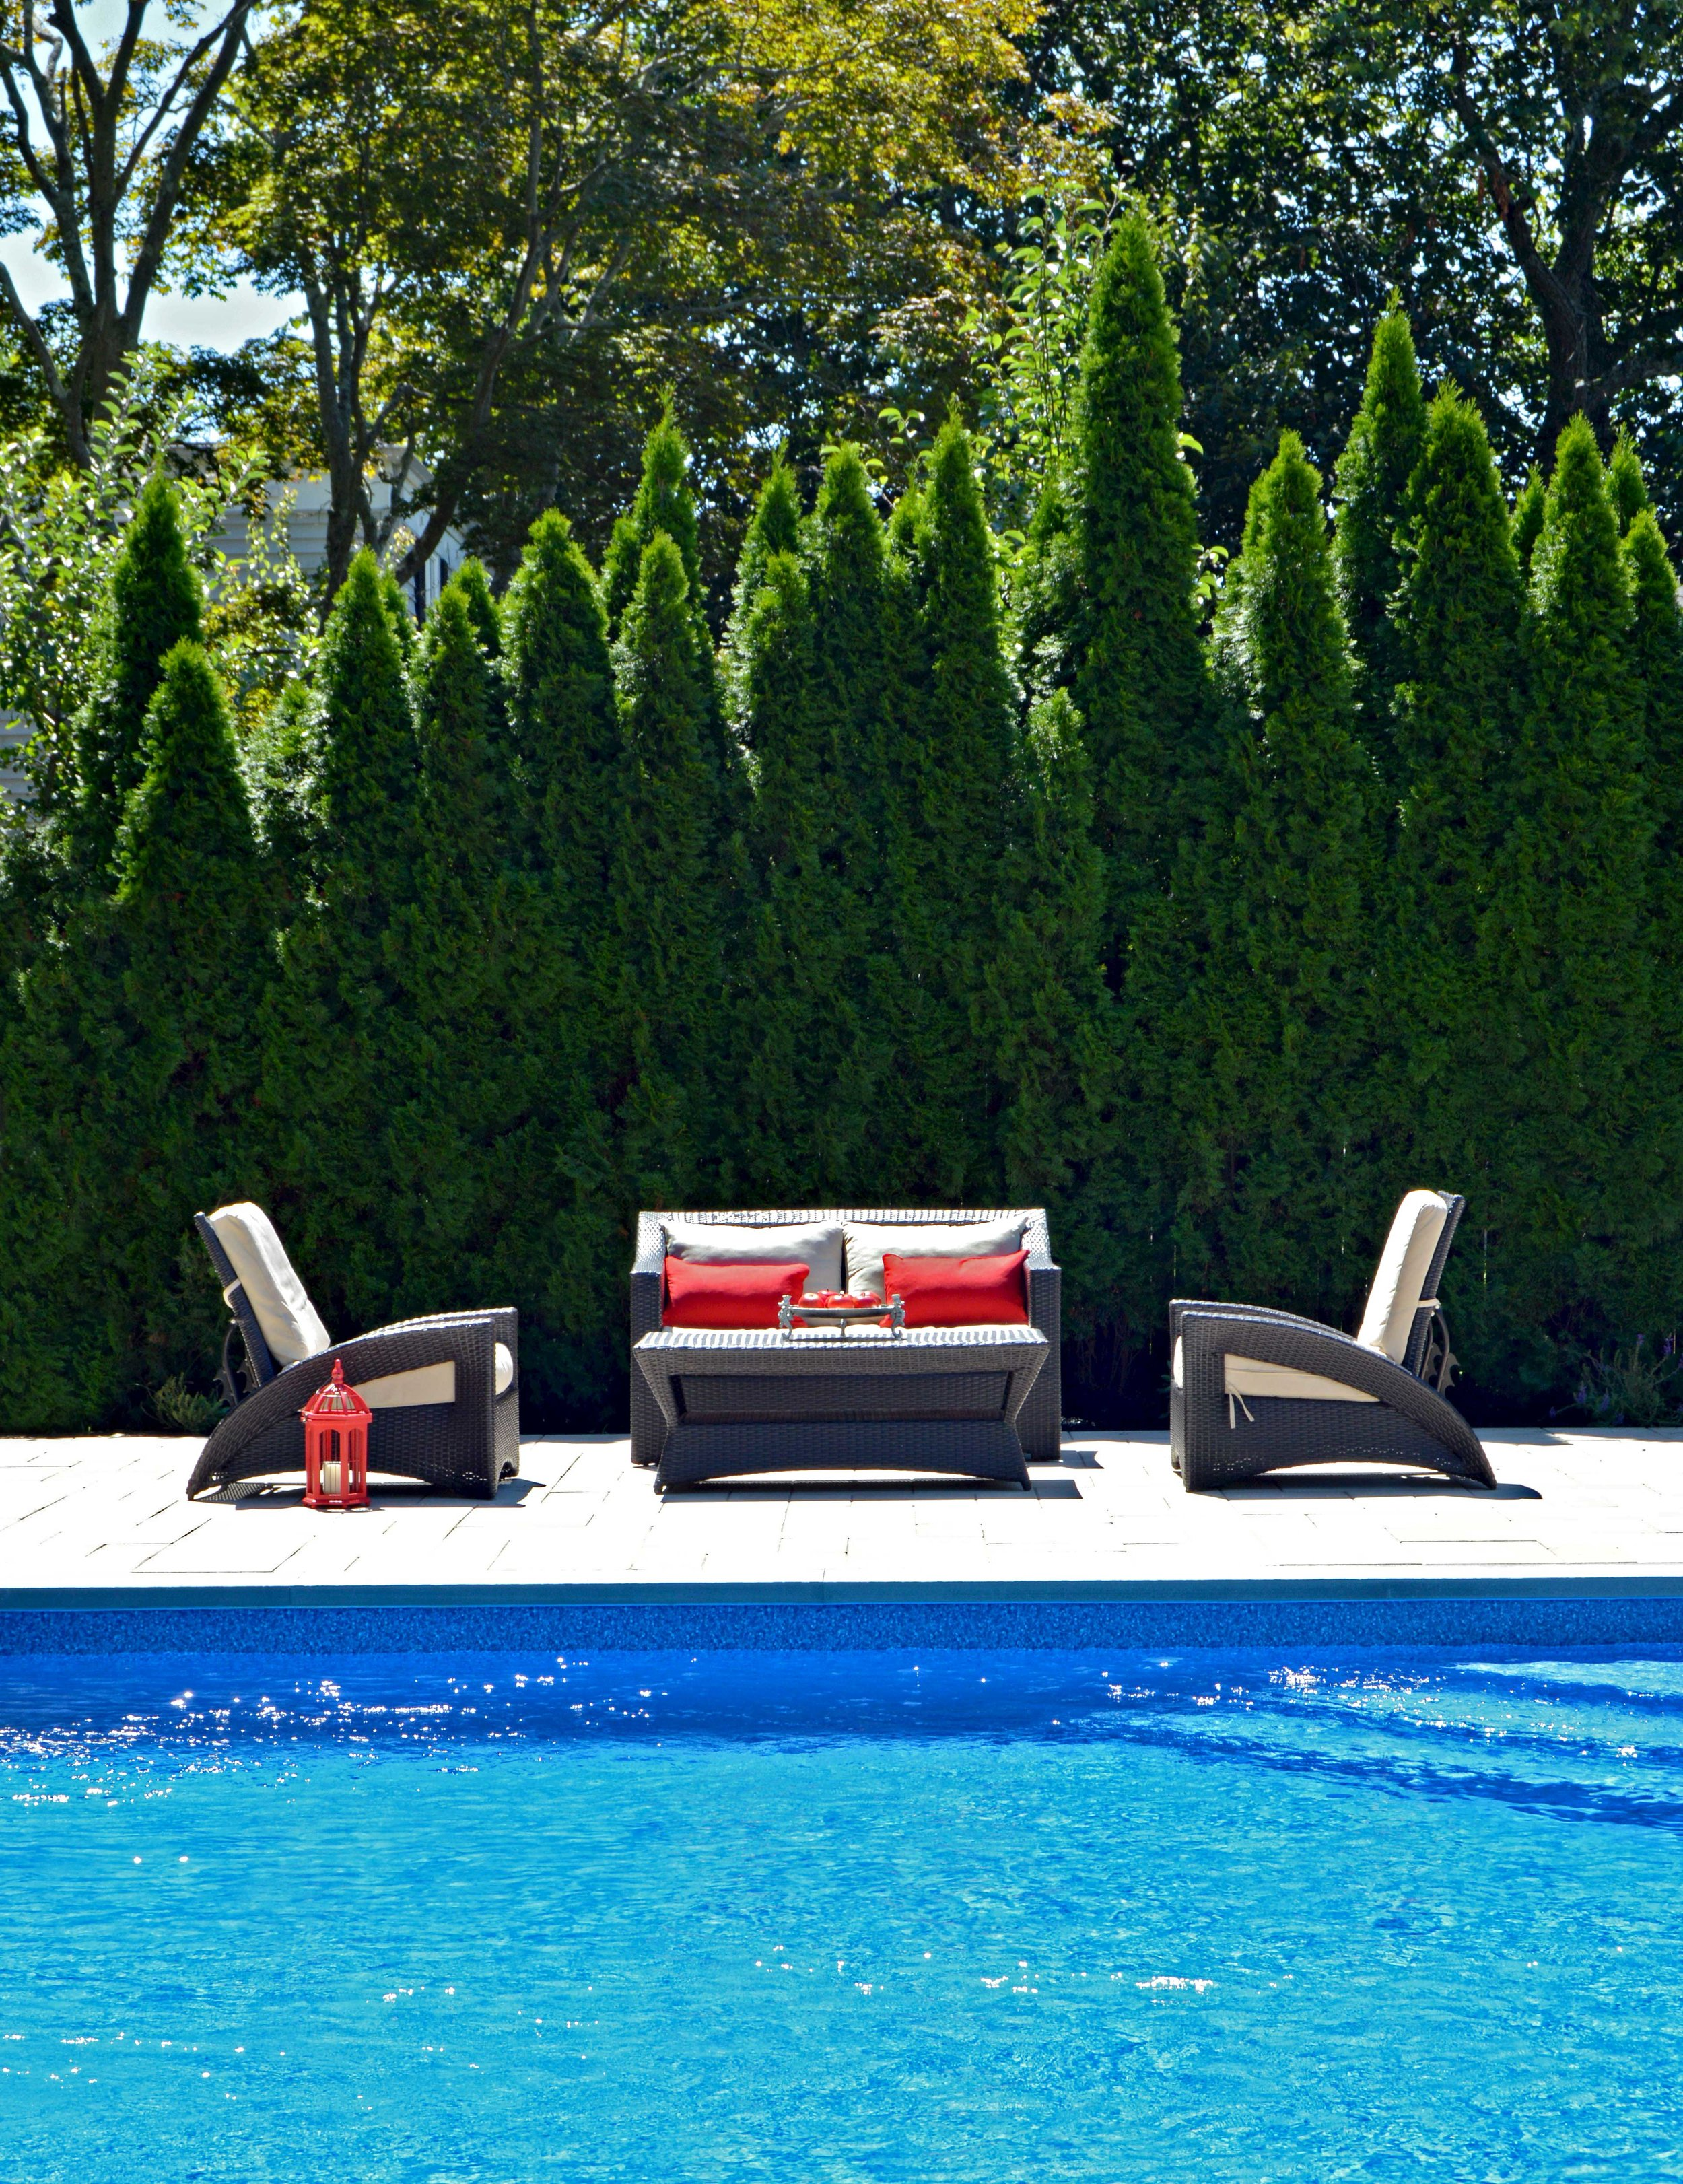 Babylon, NY swimming pool patio and couch contemporary style